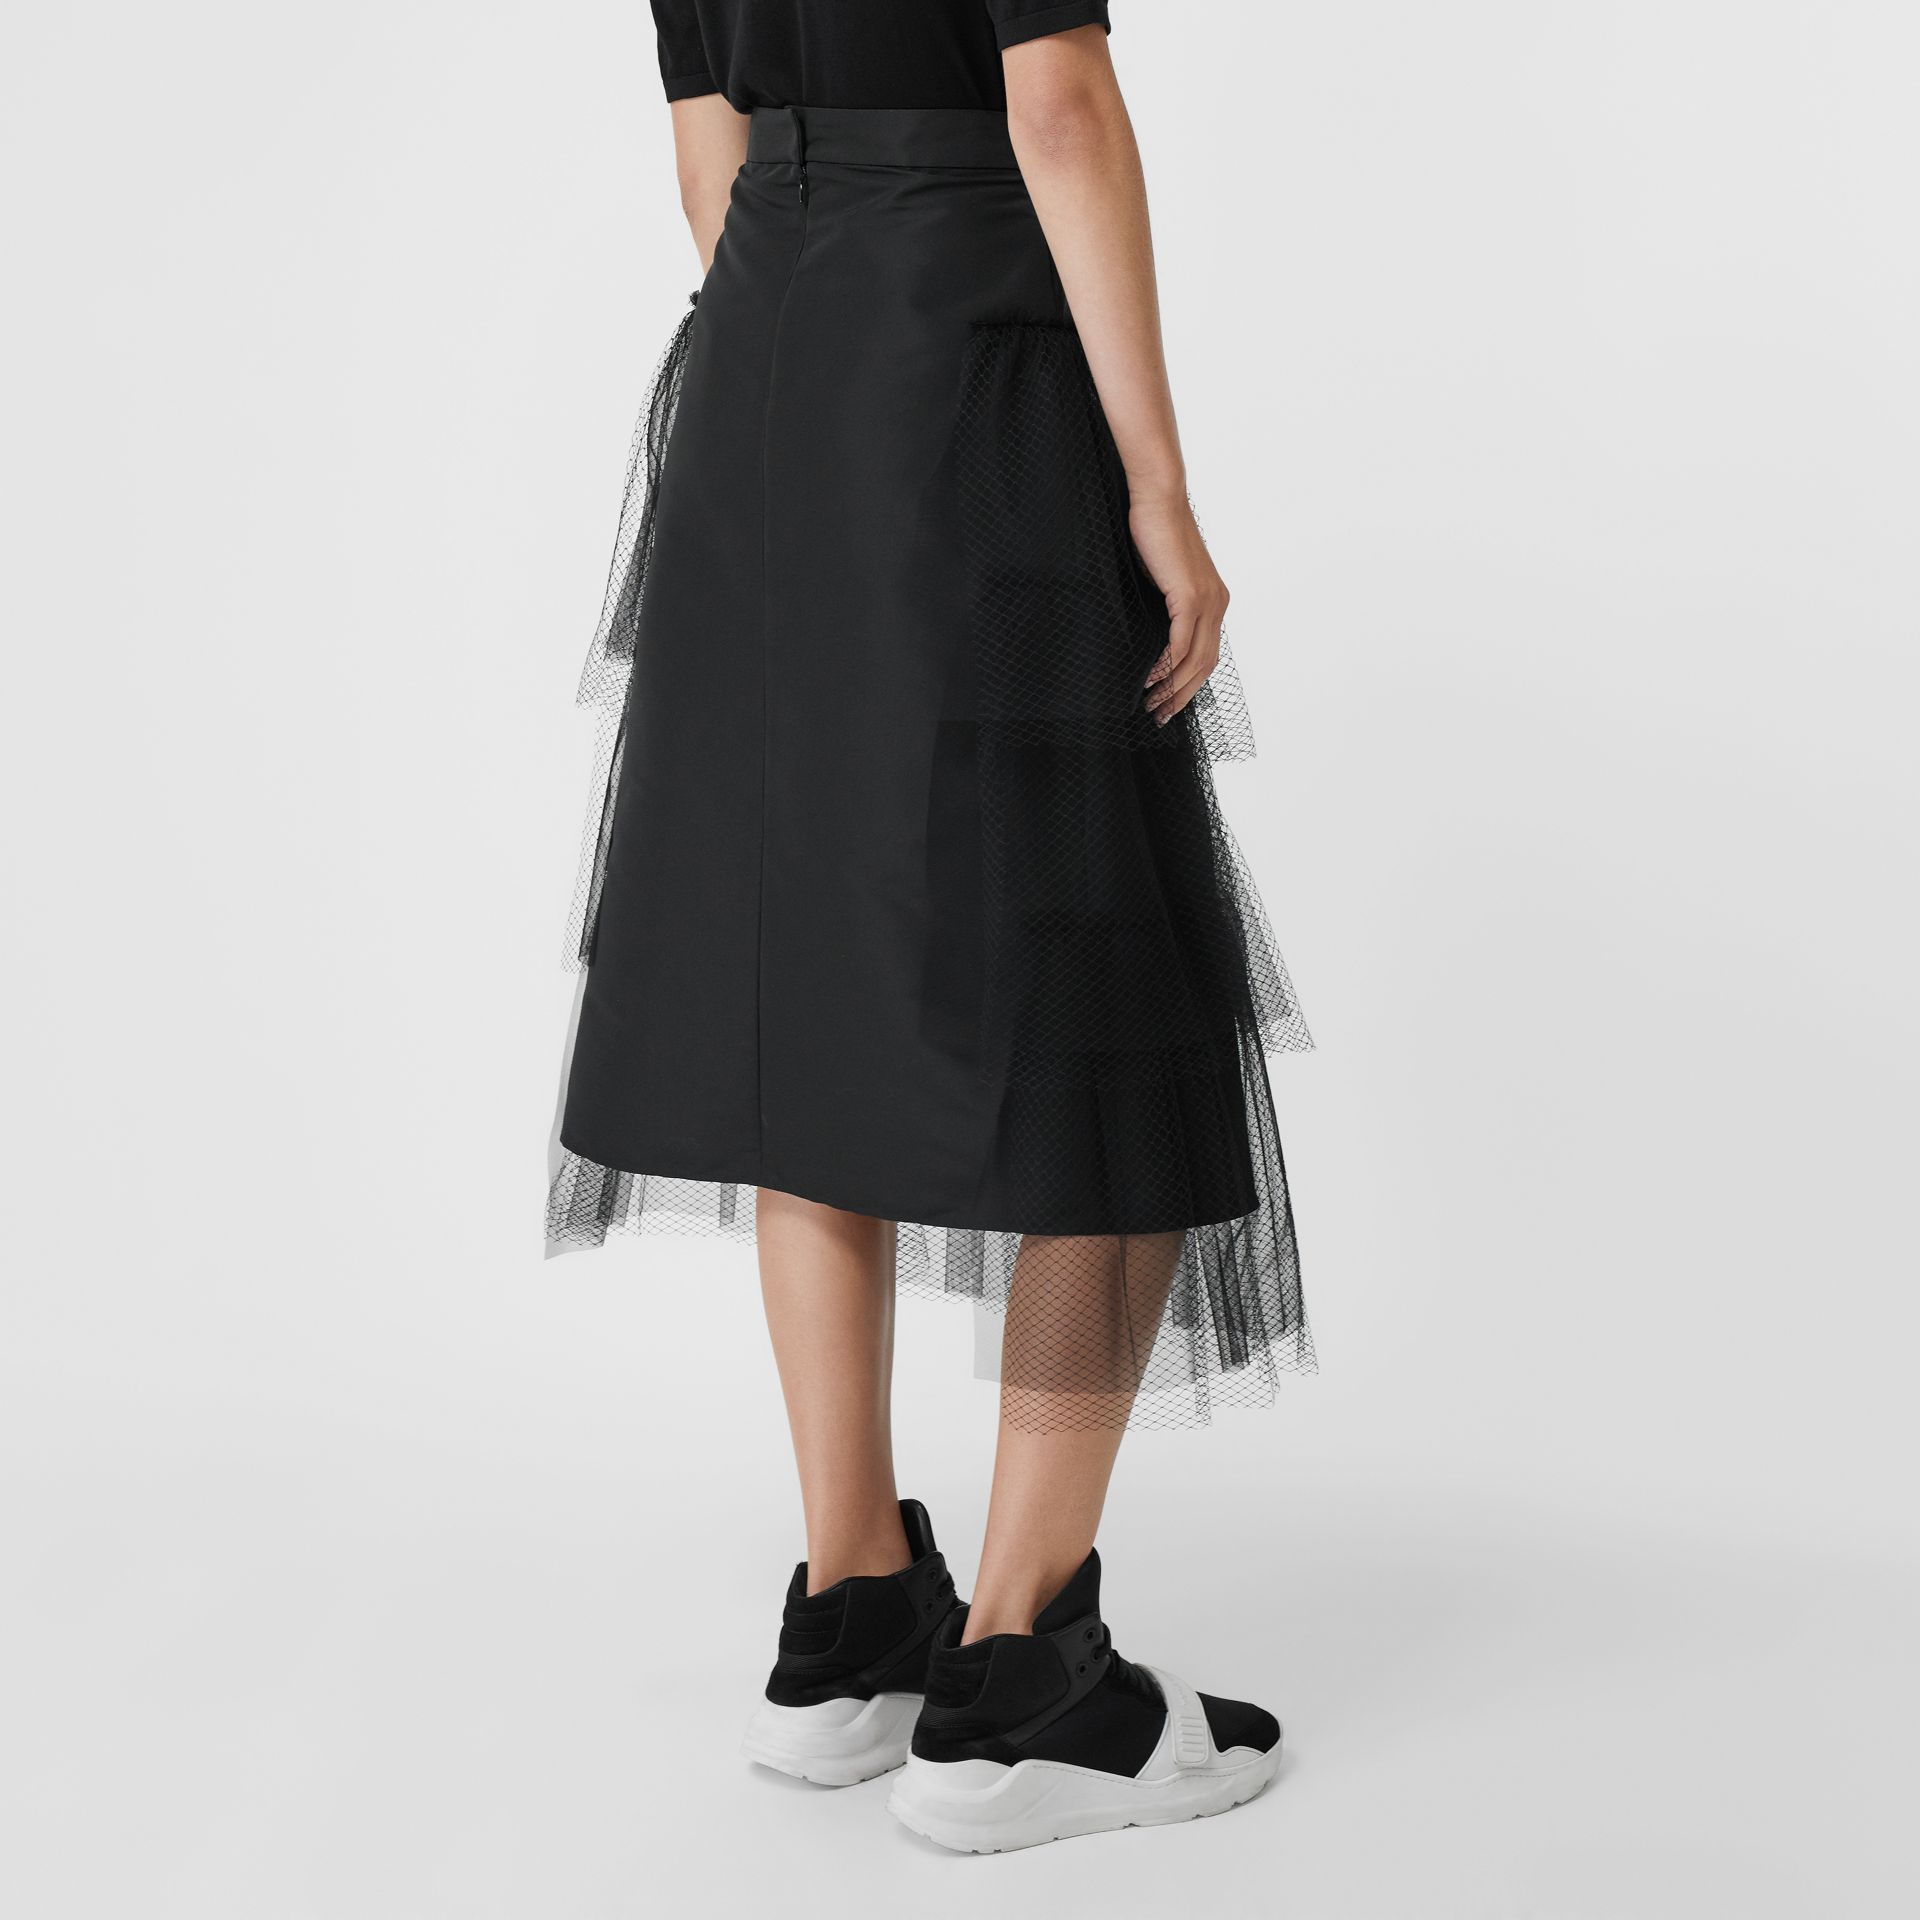 Tiered Tulle A-line Skirt in Black - Women | Burberry Canada - gallery image 2